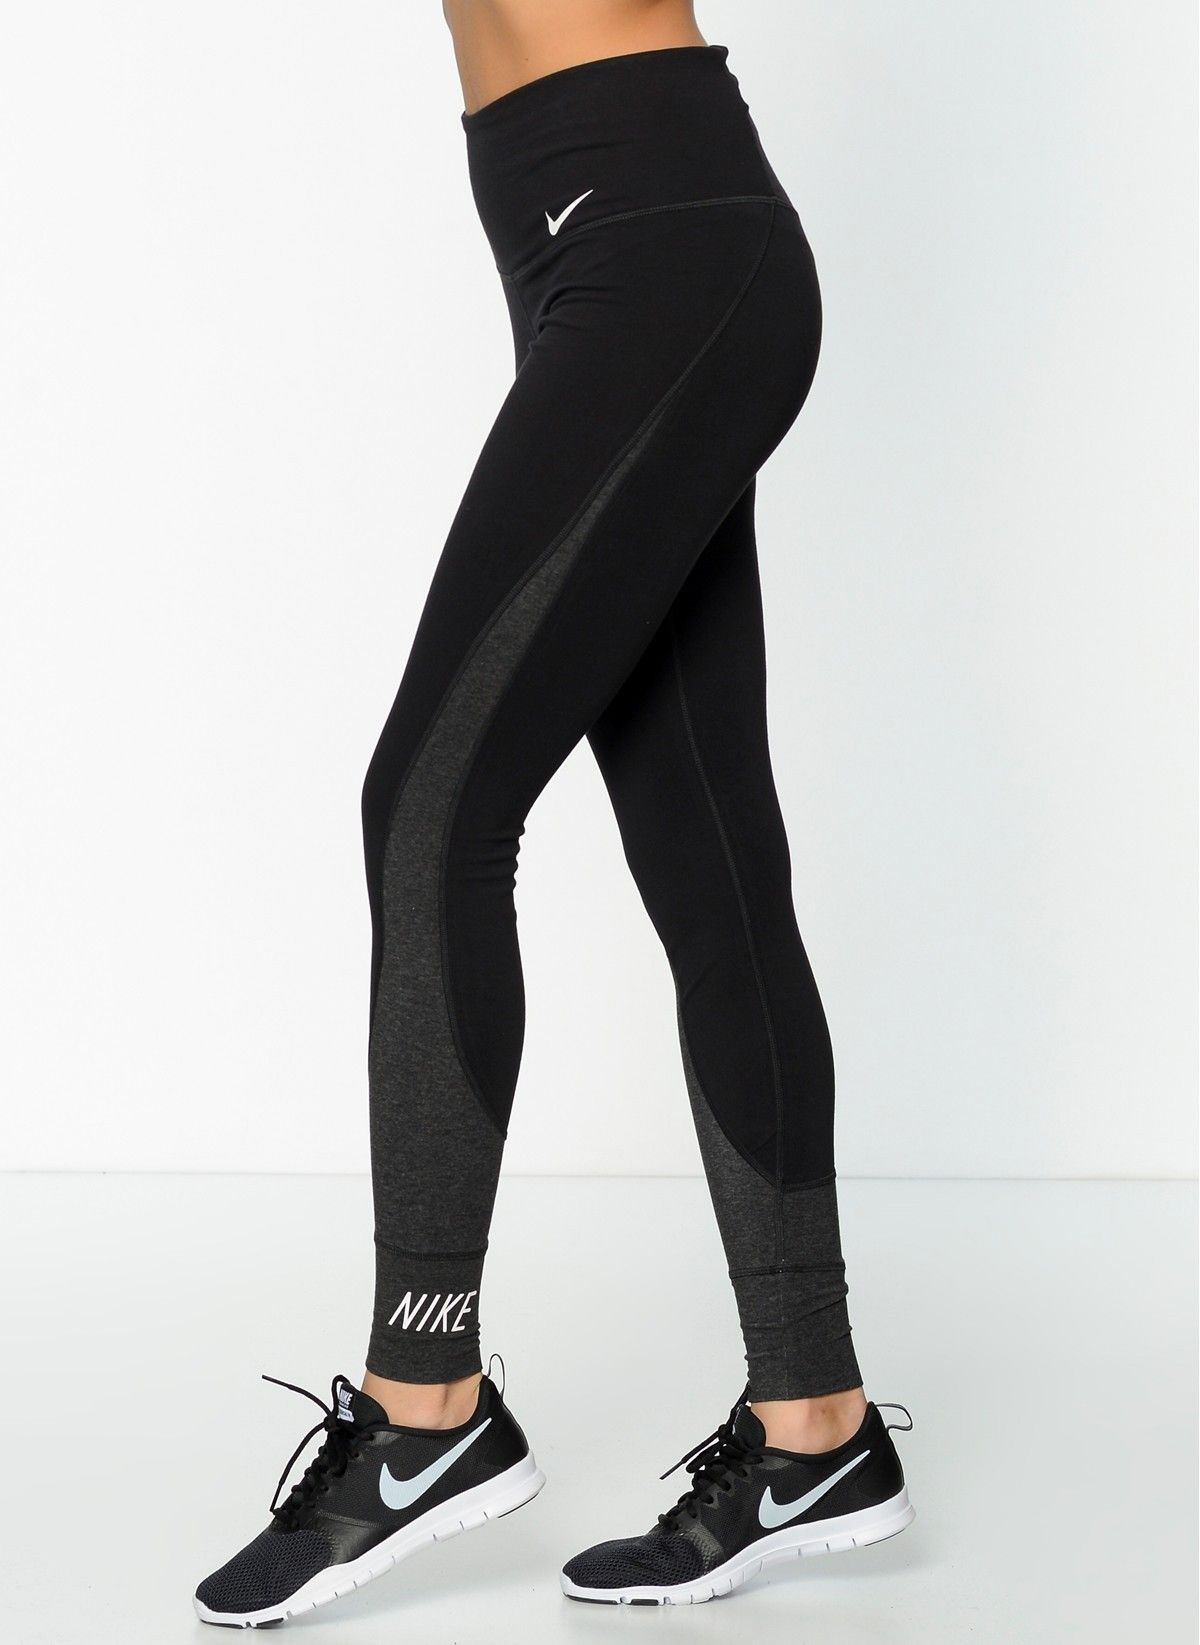 91878525a4148 Leggings, Tights, Powerful Women, Sculpting, Black Jeans, Nike Women,  Clothing